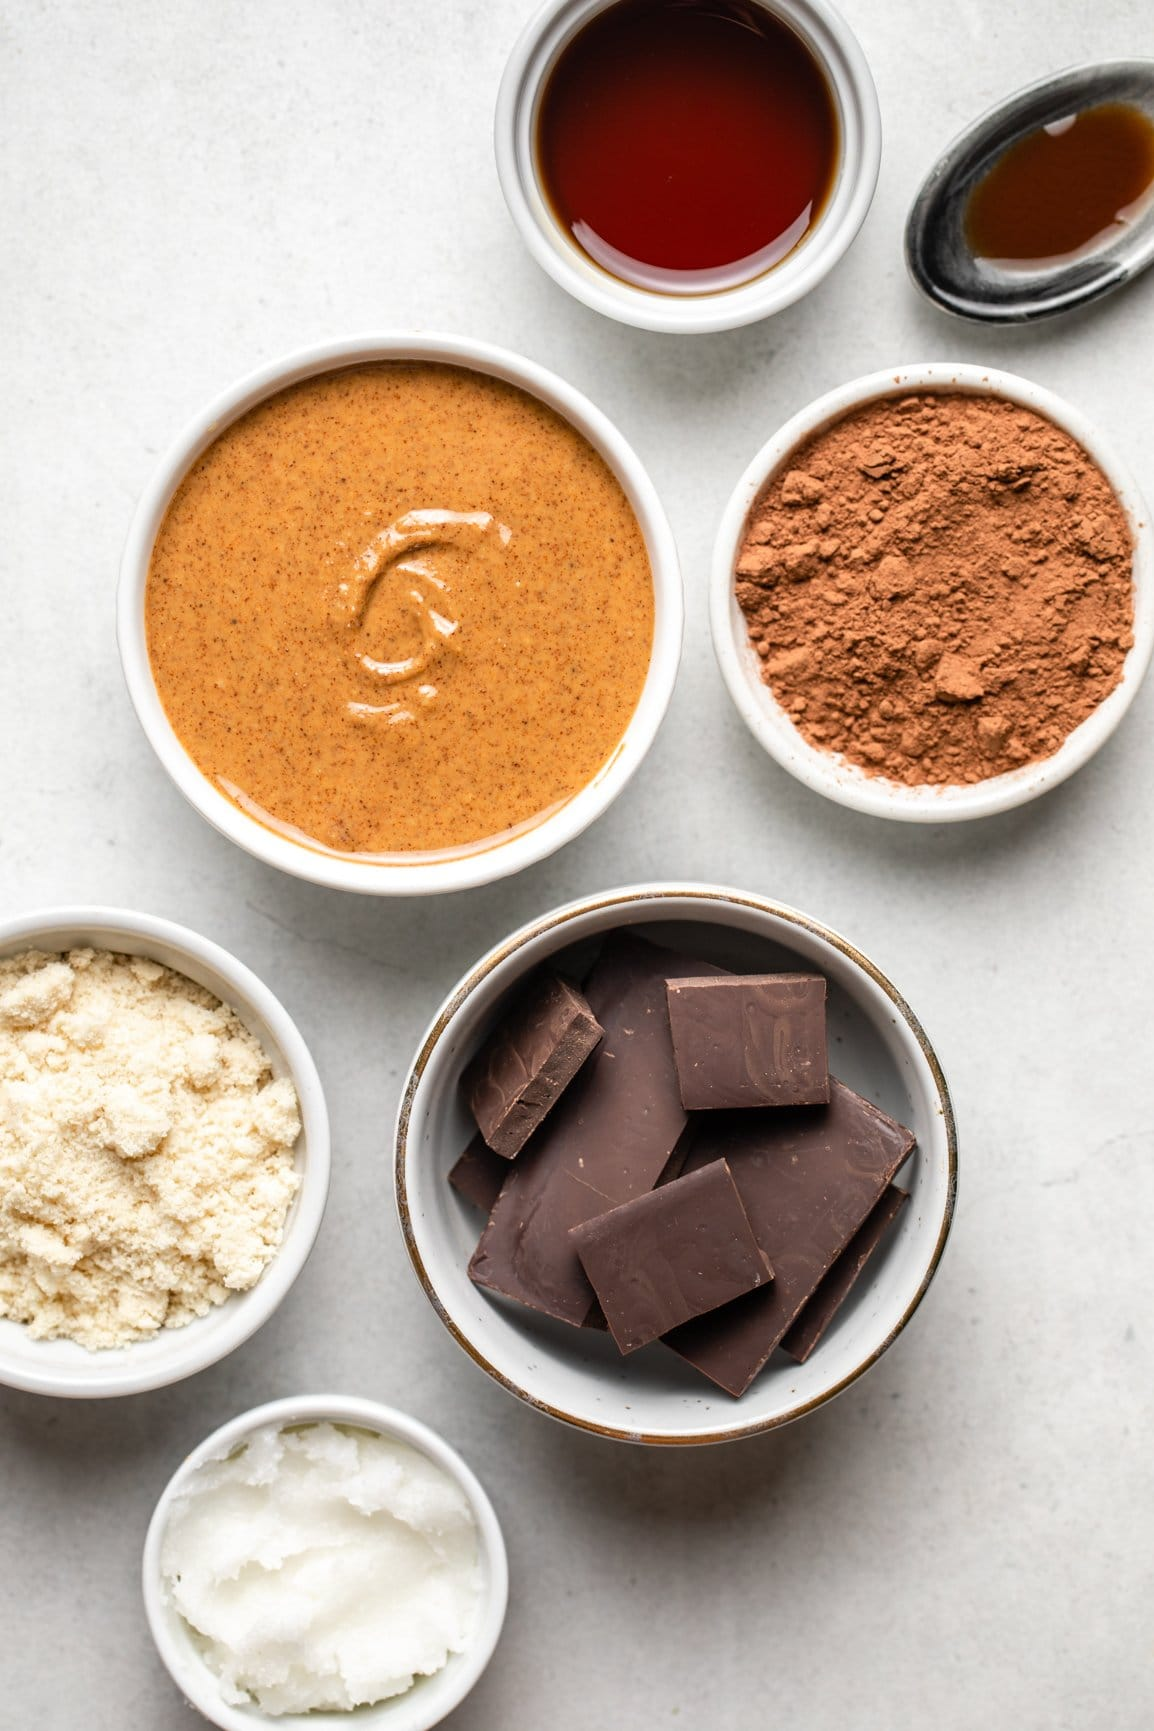 ingredients for chocolate almond butter bars in small white bowls on stone background